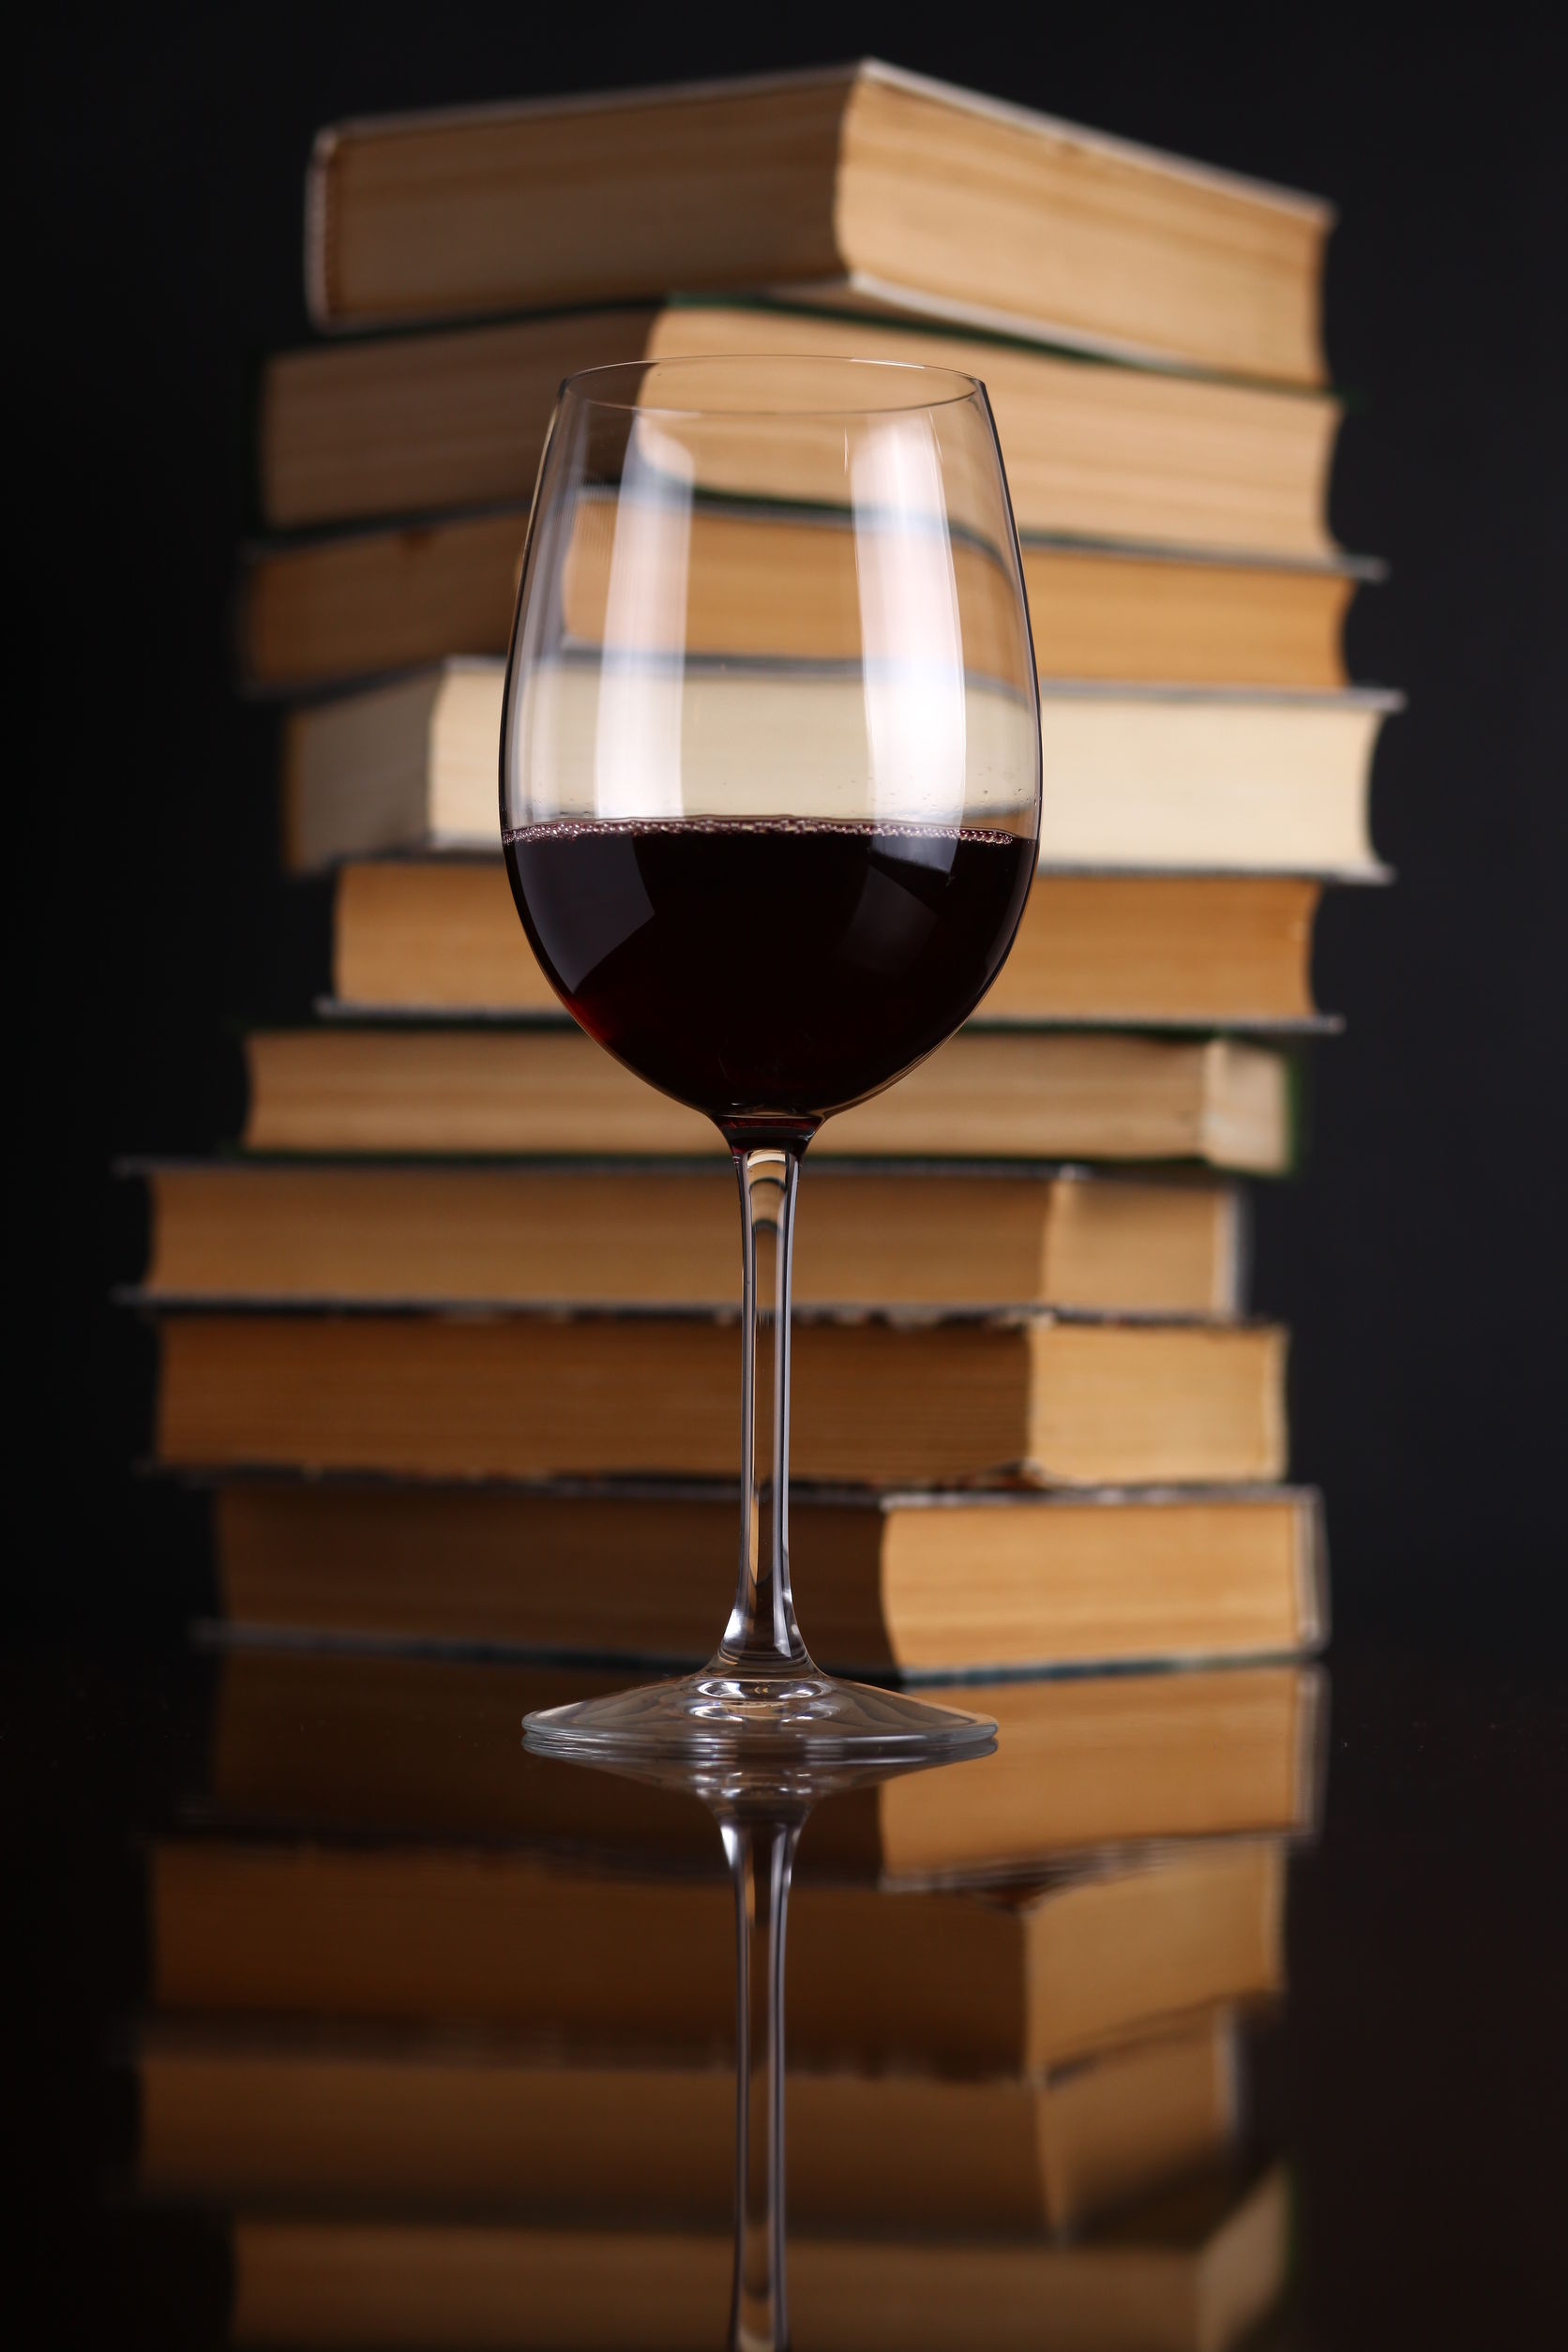 Books-and-red-wine.jpg